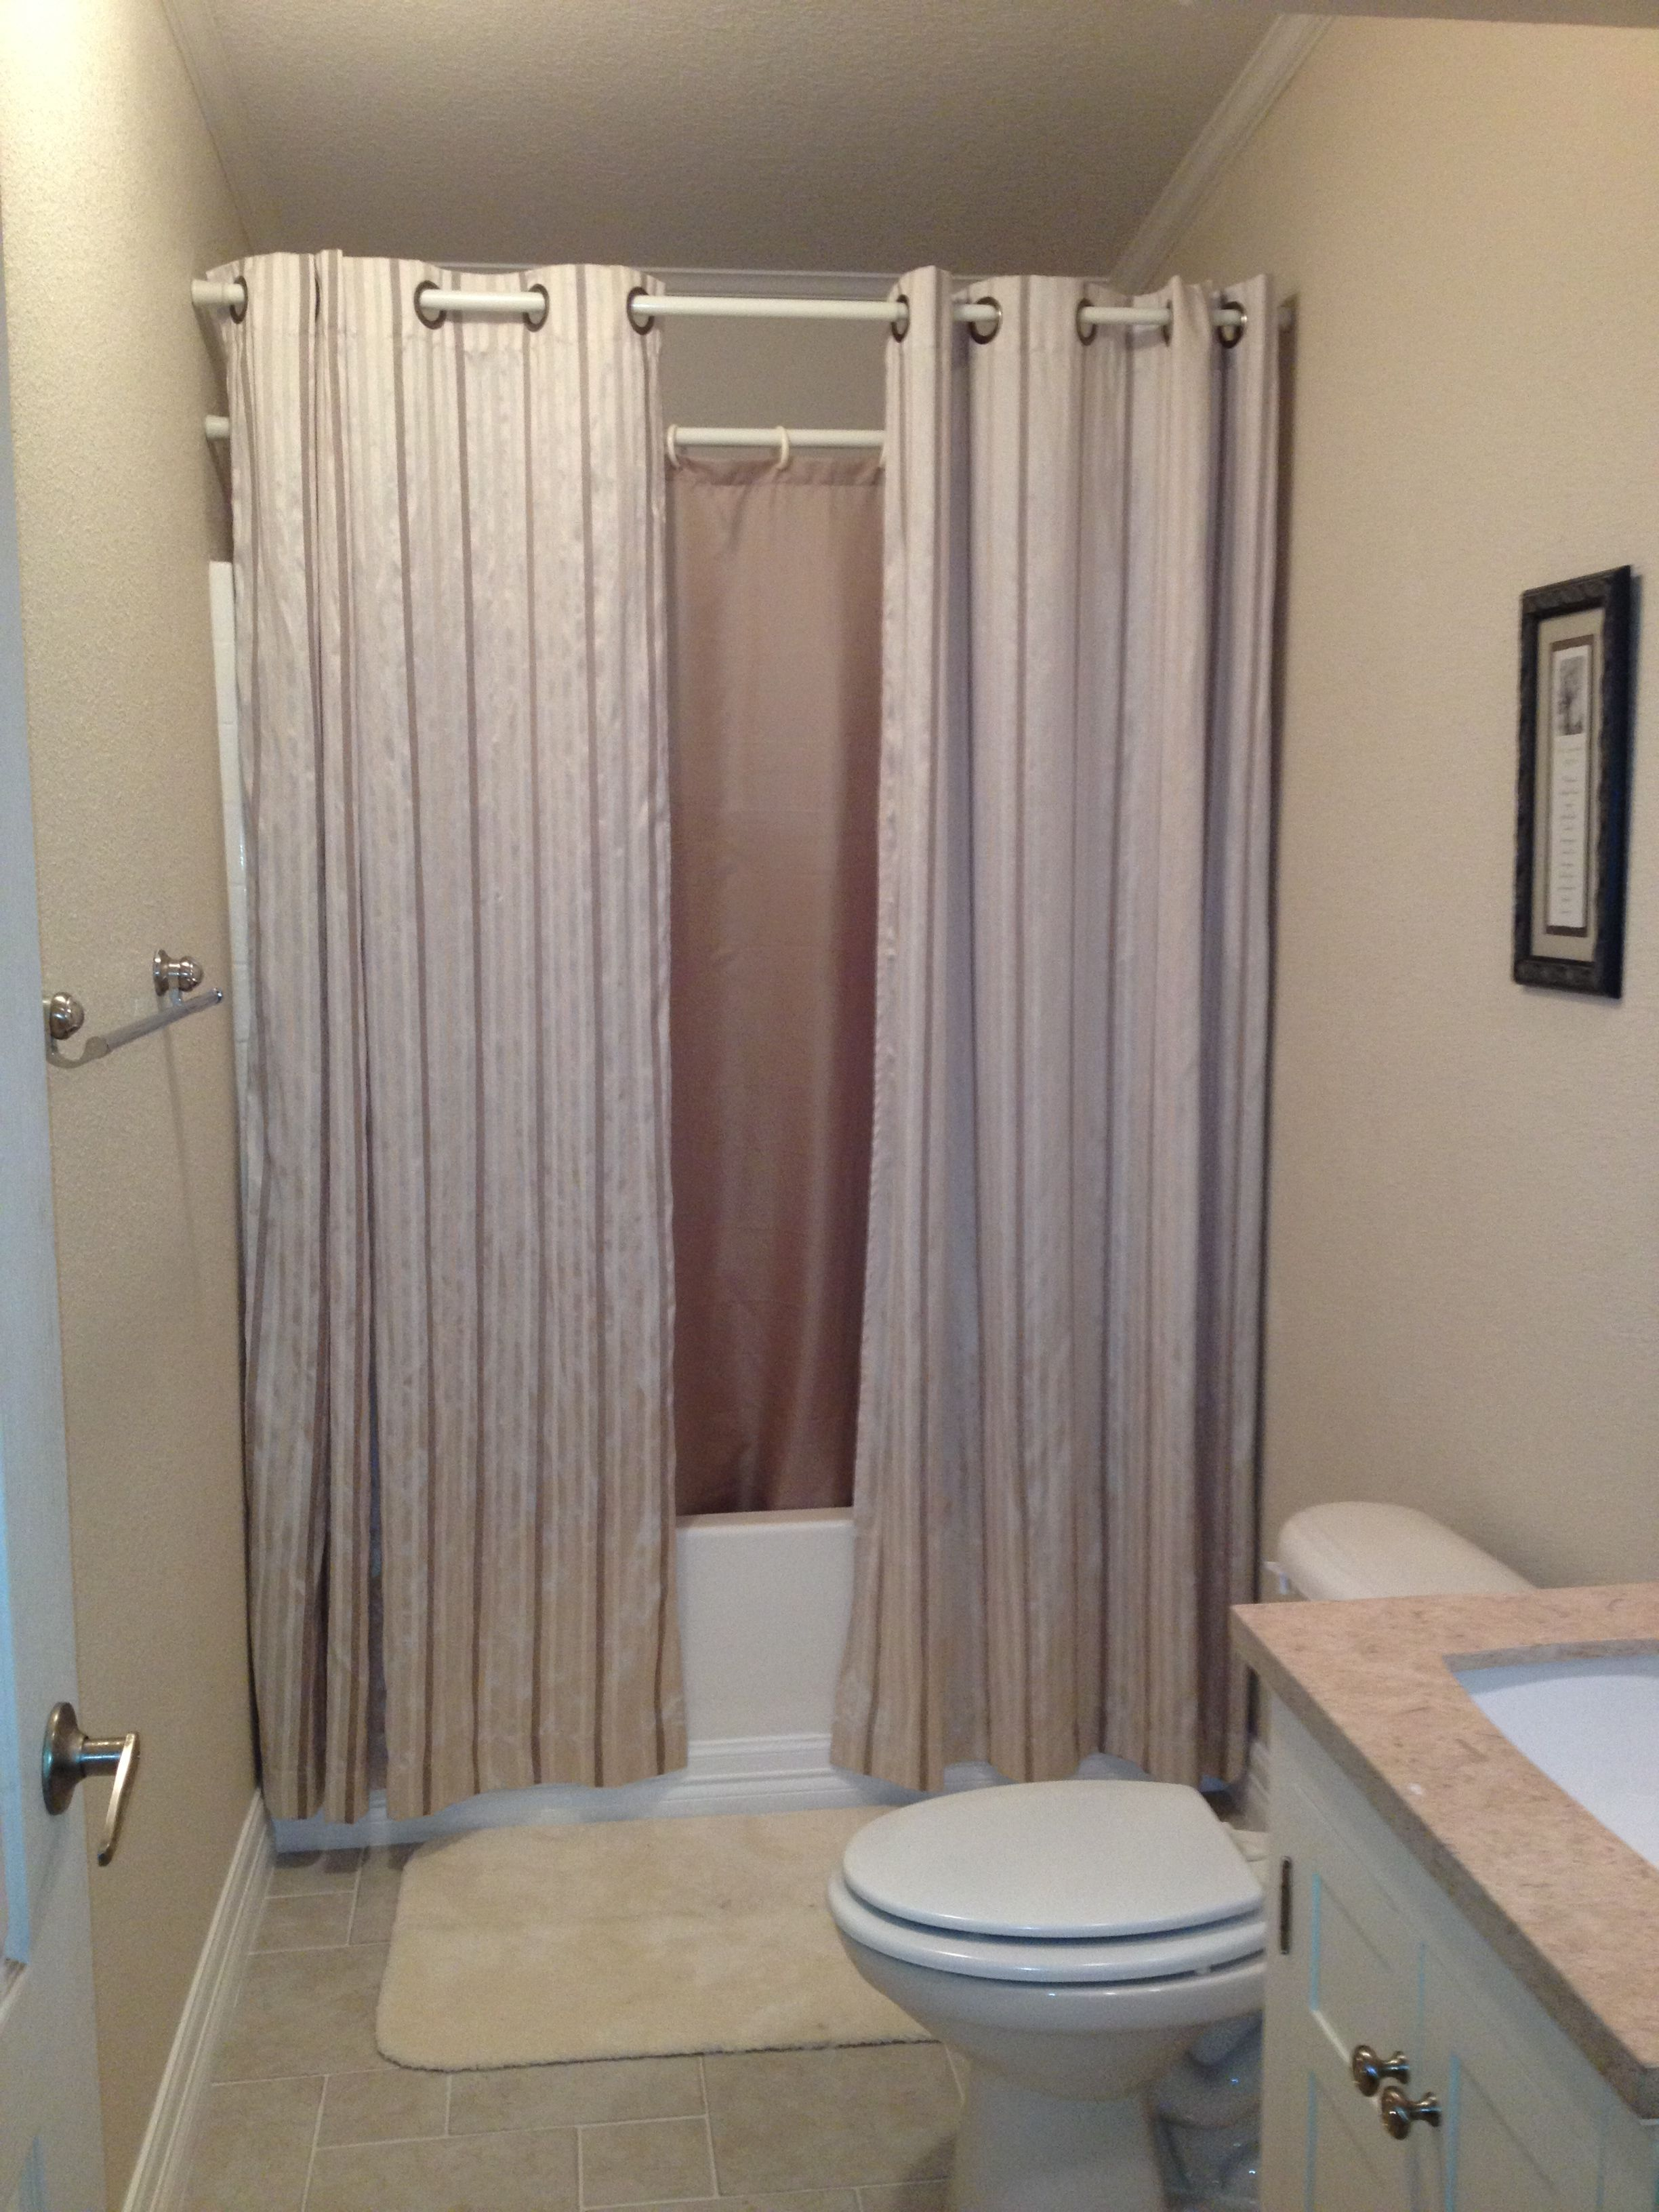 Hanging Shower Curtains To Make Small Bathroom Look Bigger With